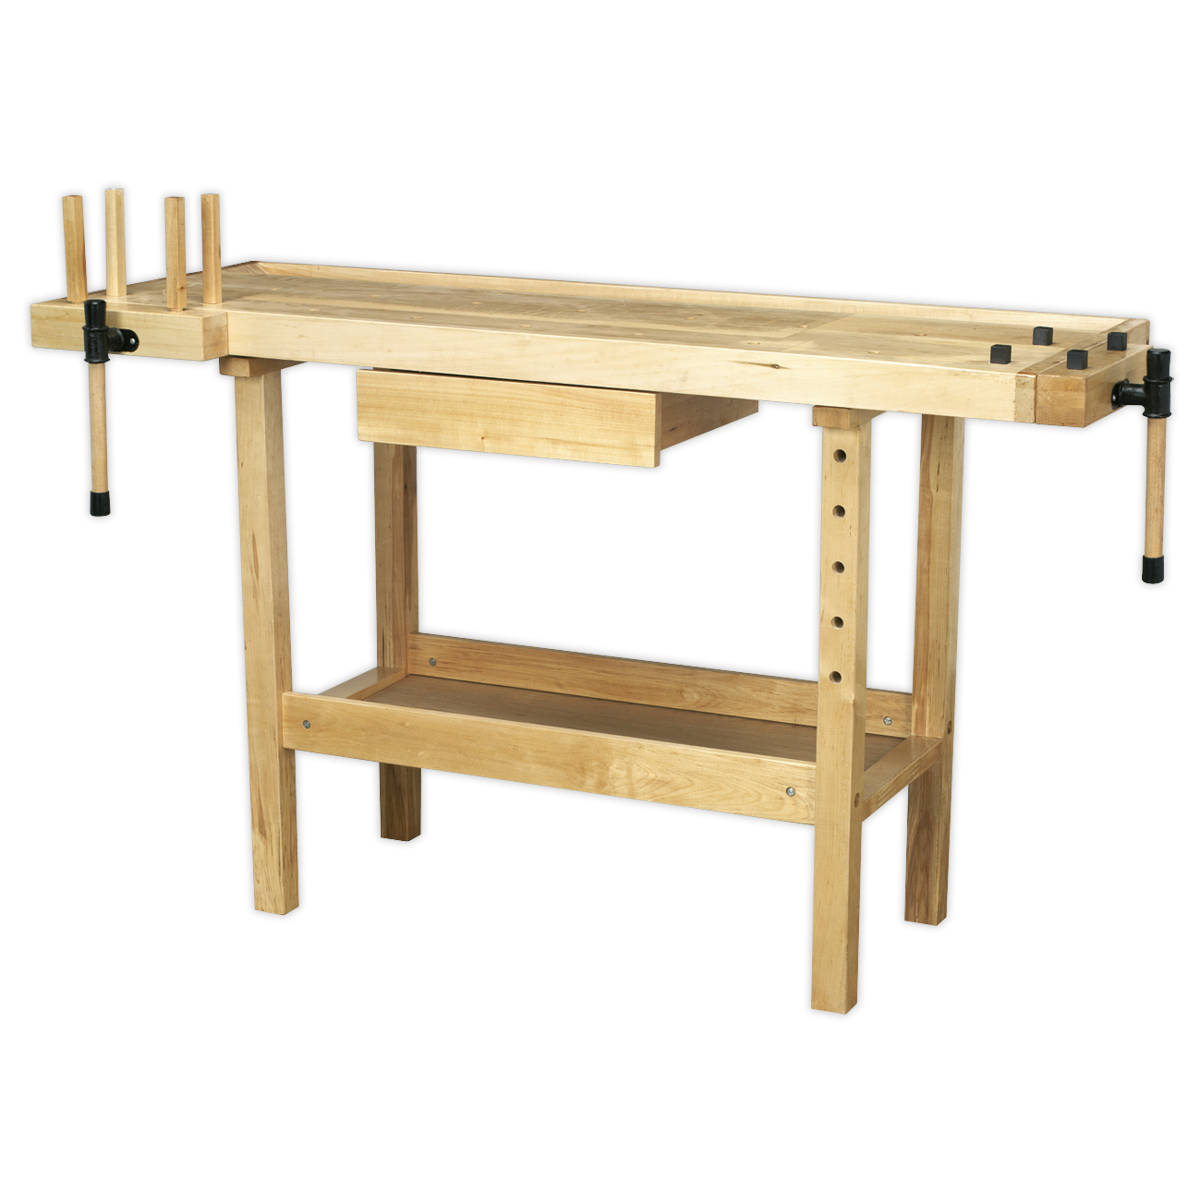 - Woodworking Bench 1.52m SEALEY AP1520 by Sealey